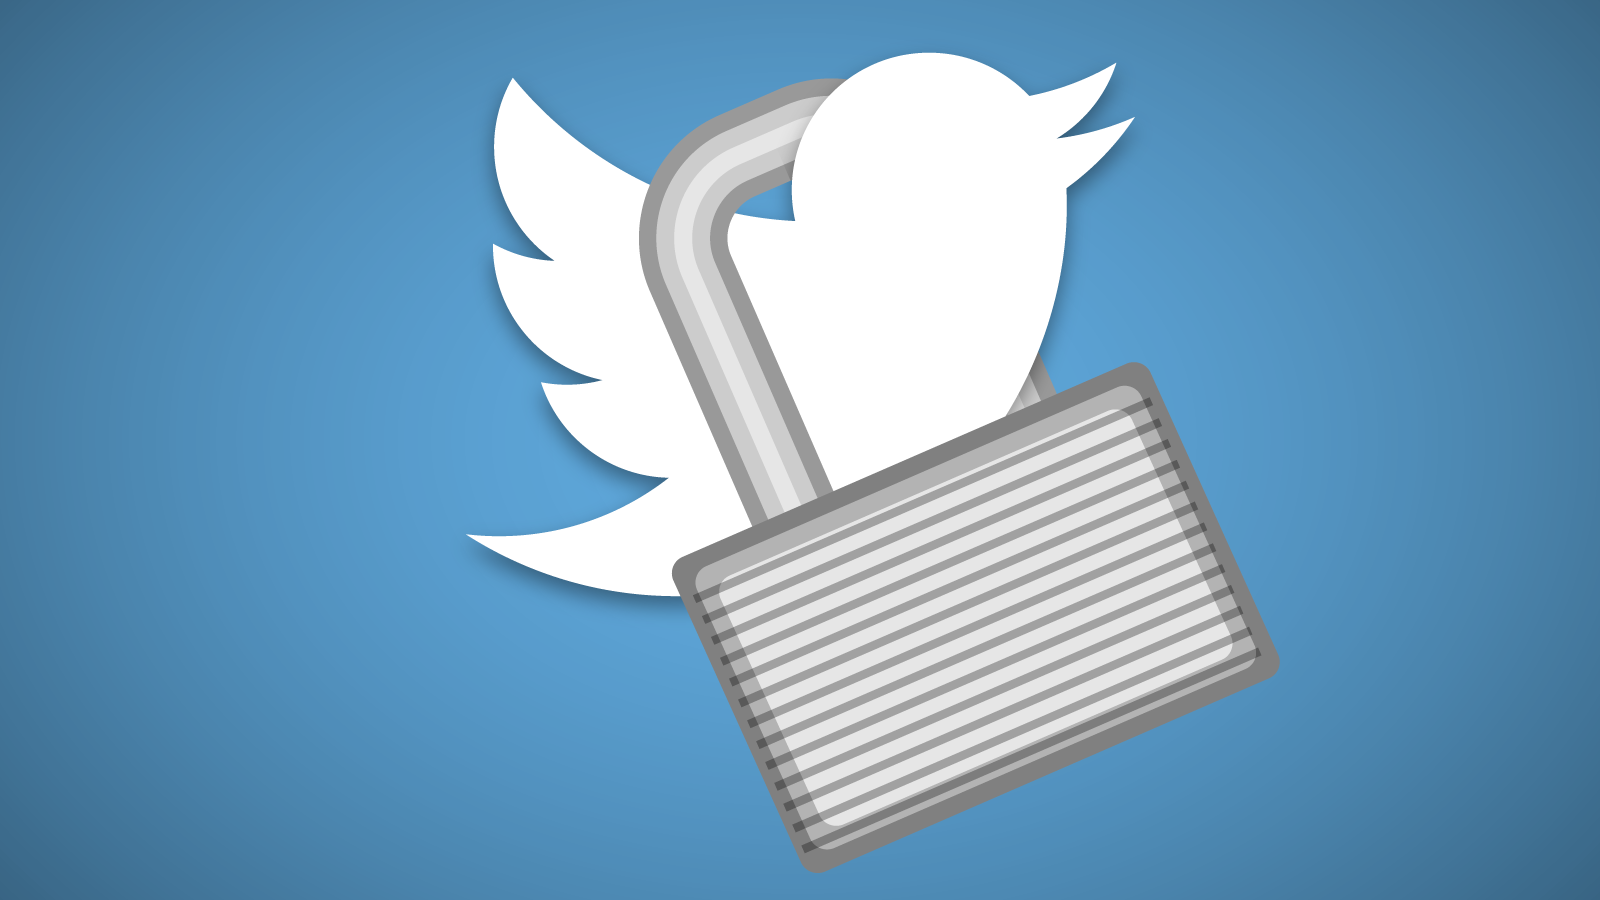 Twitter may be tinkering with encrypted direct messages